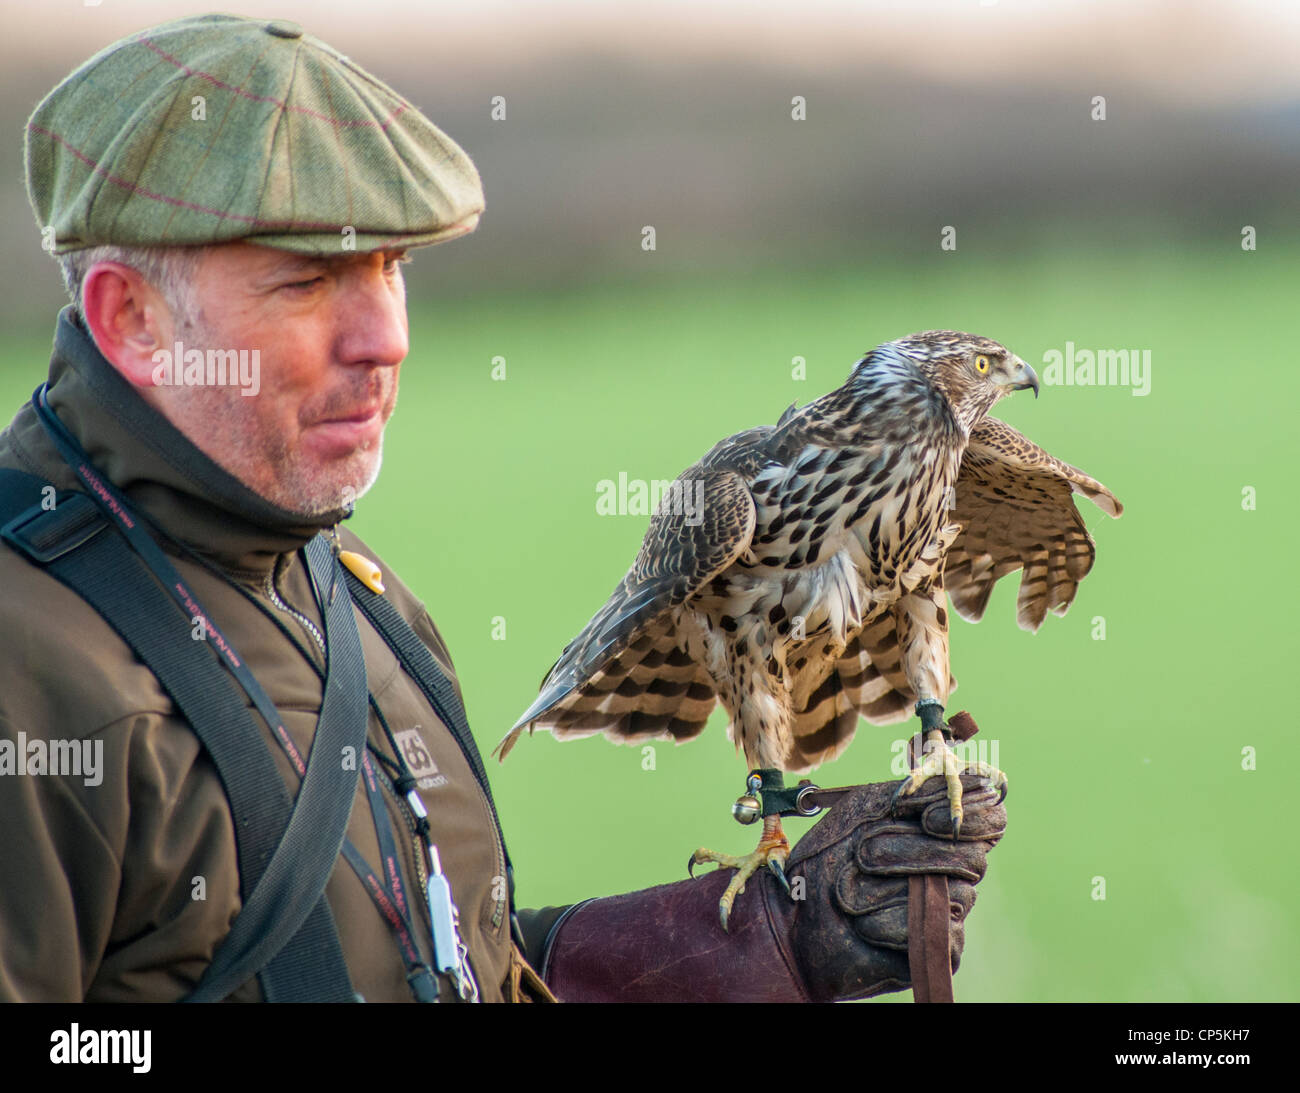 A Goshawk on falconers wrist glove during a days hunting in England - Stock Image